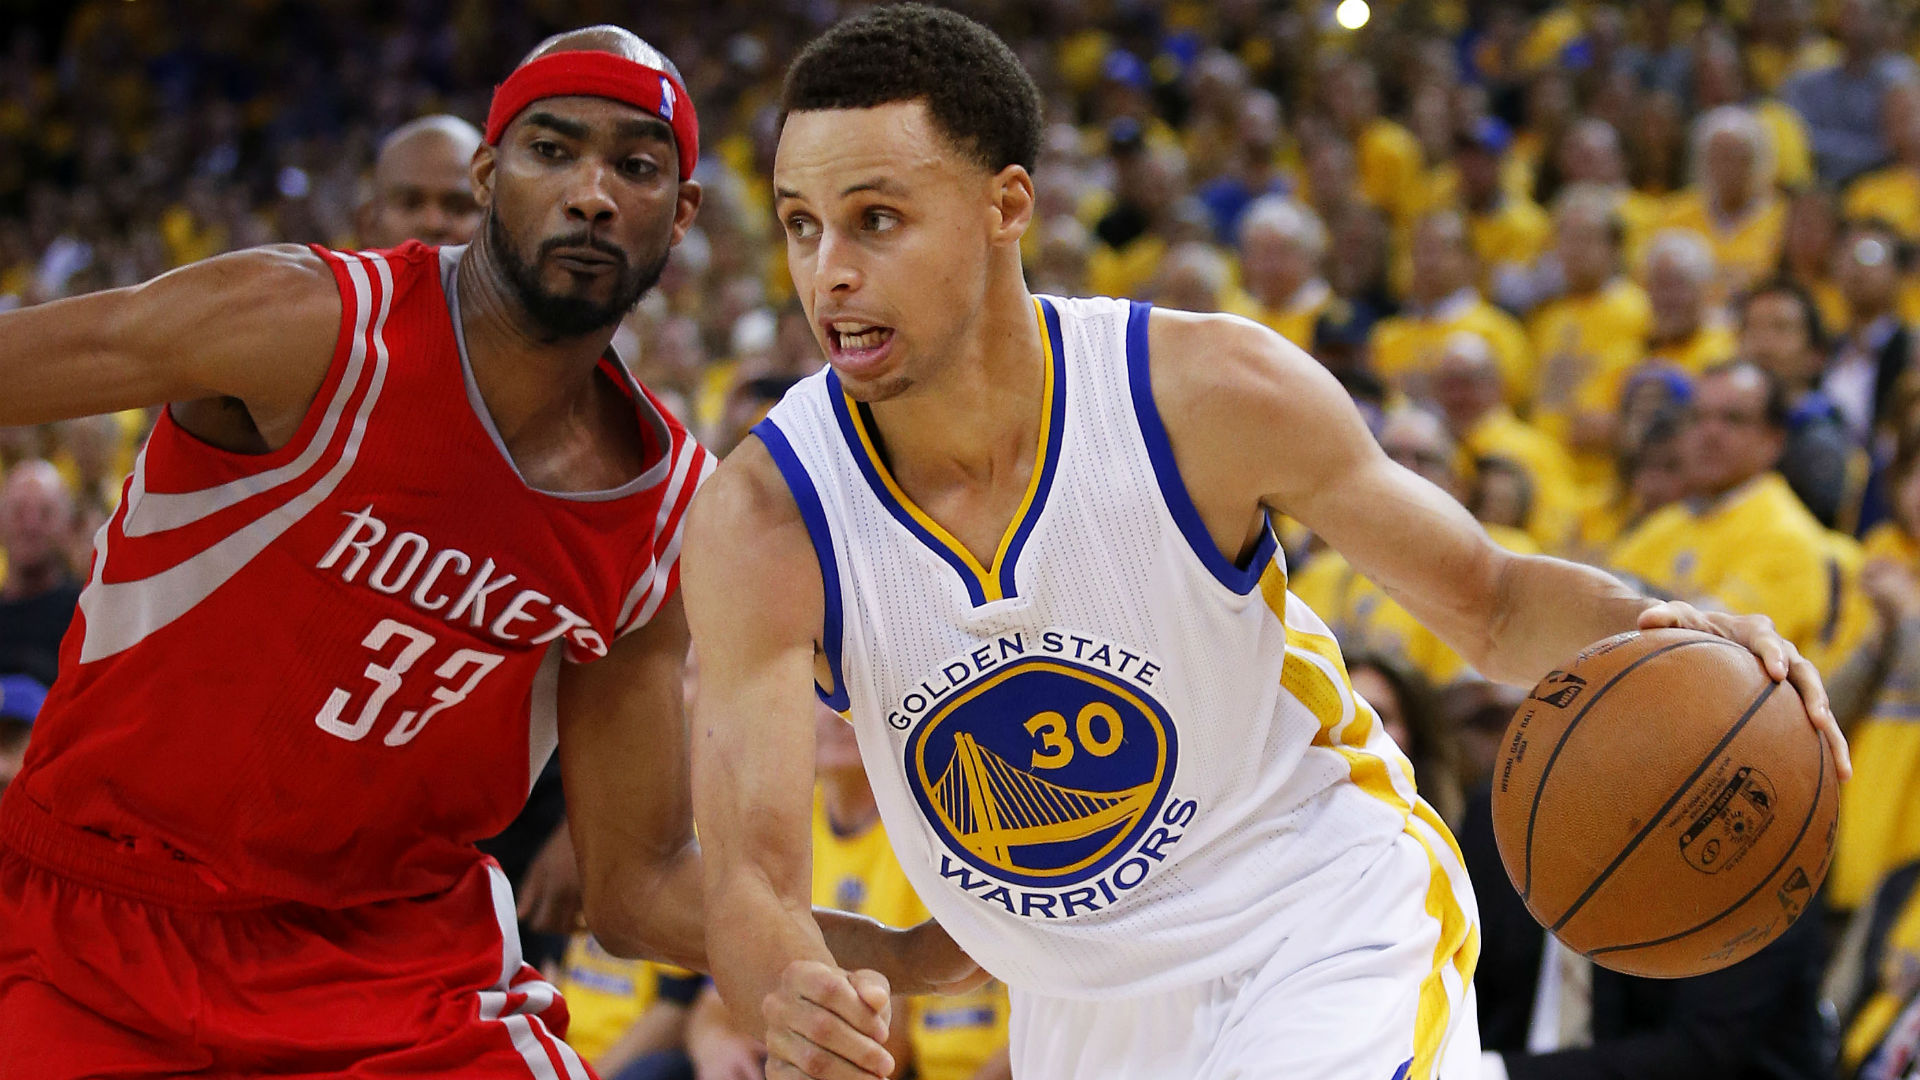 Rockets vs. Warriors Game 2 line and pick – Oddsmakers stand pat on spread, total